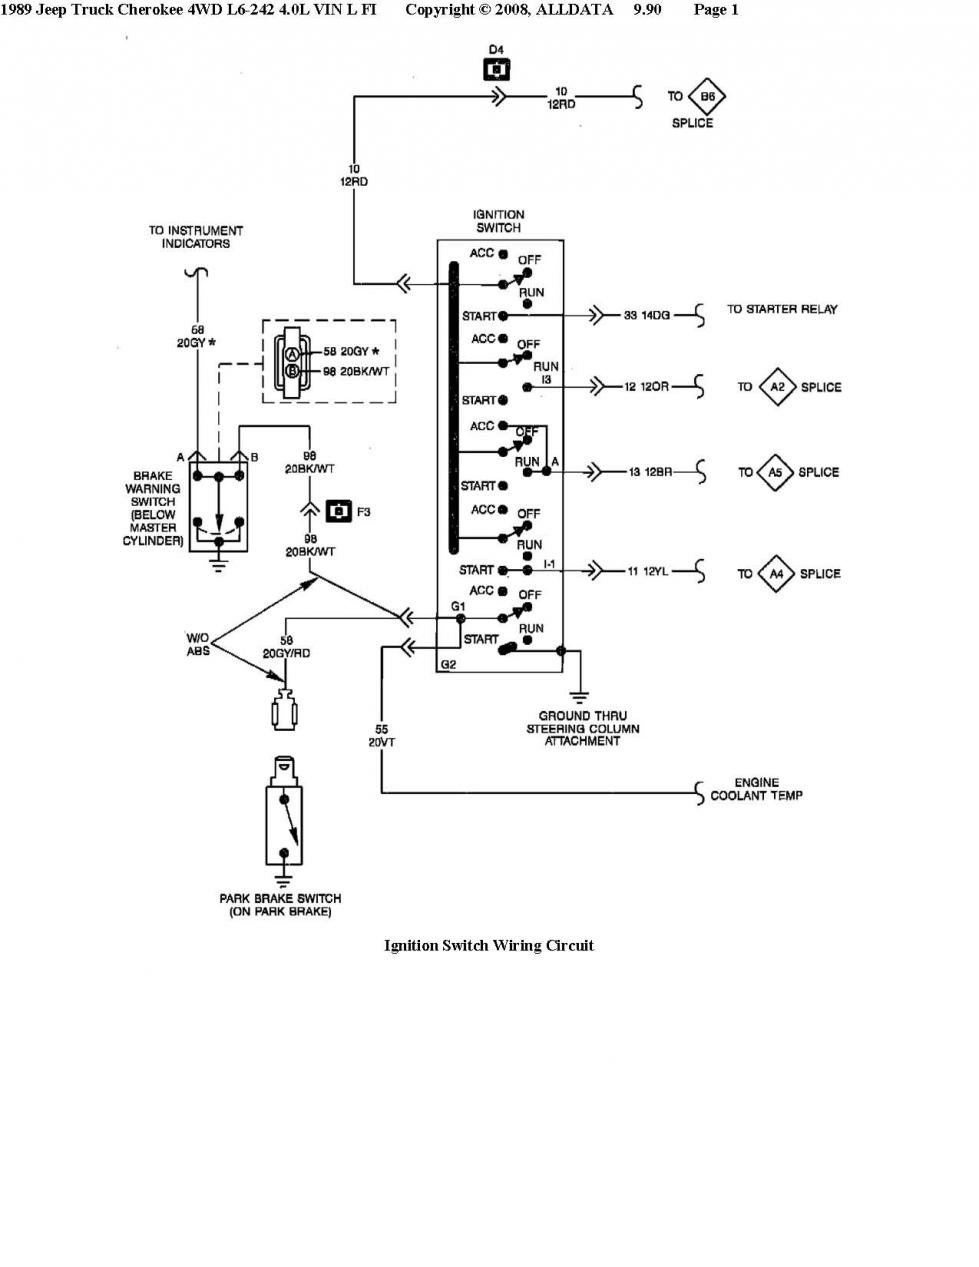 122393d1423690143-fuse-blown-89-ignition-switch Np Wiring Diagram on boat battery, air compressor, ford alternator, driving light, wire trailer, basic electrical, fog light, ignition switch, camper trailer, dump trailer, limit switch, simple motorcycle, 4 pin relay, dc motor,